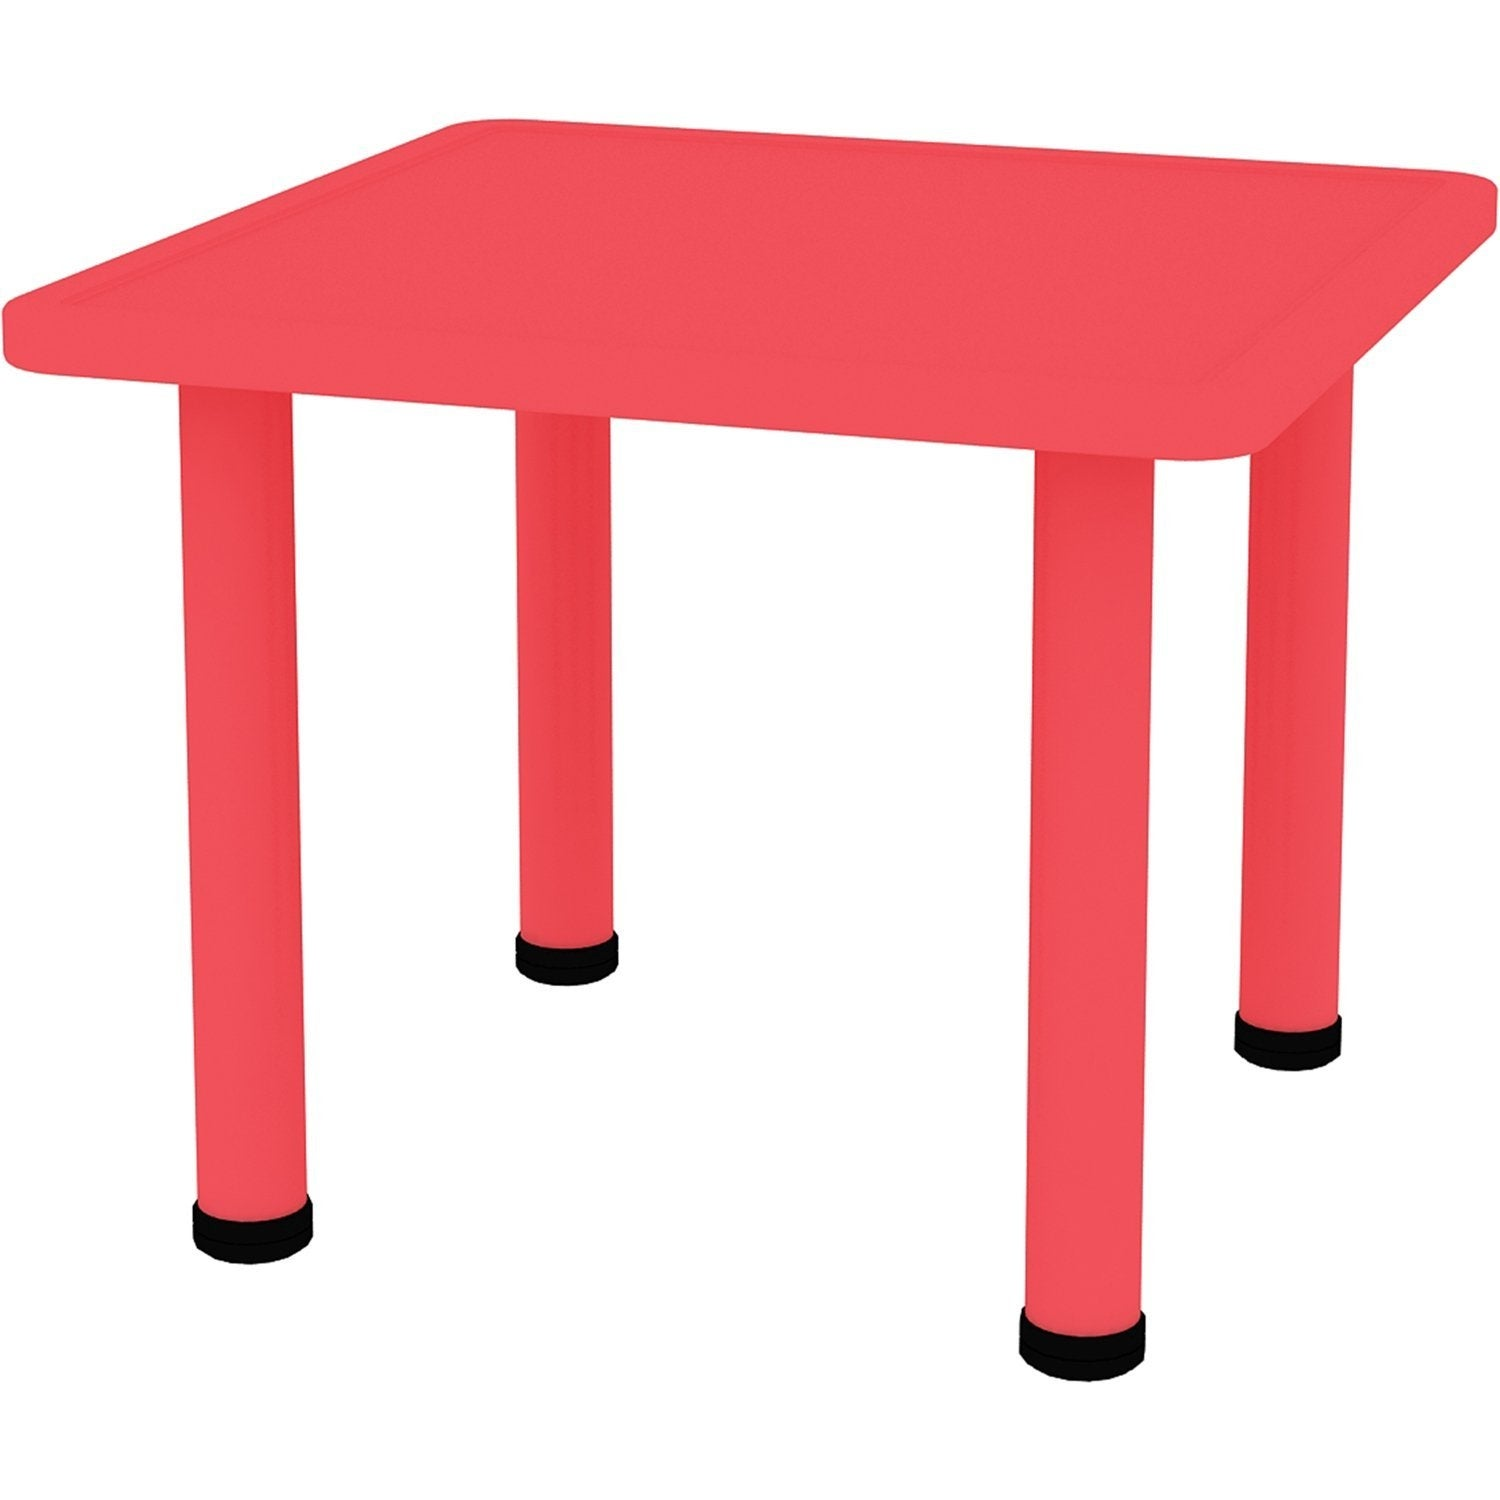 2xhome Red Kids Table Height Adjule 21 5 To 22 Square